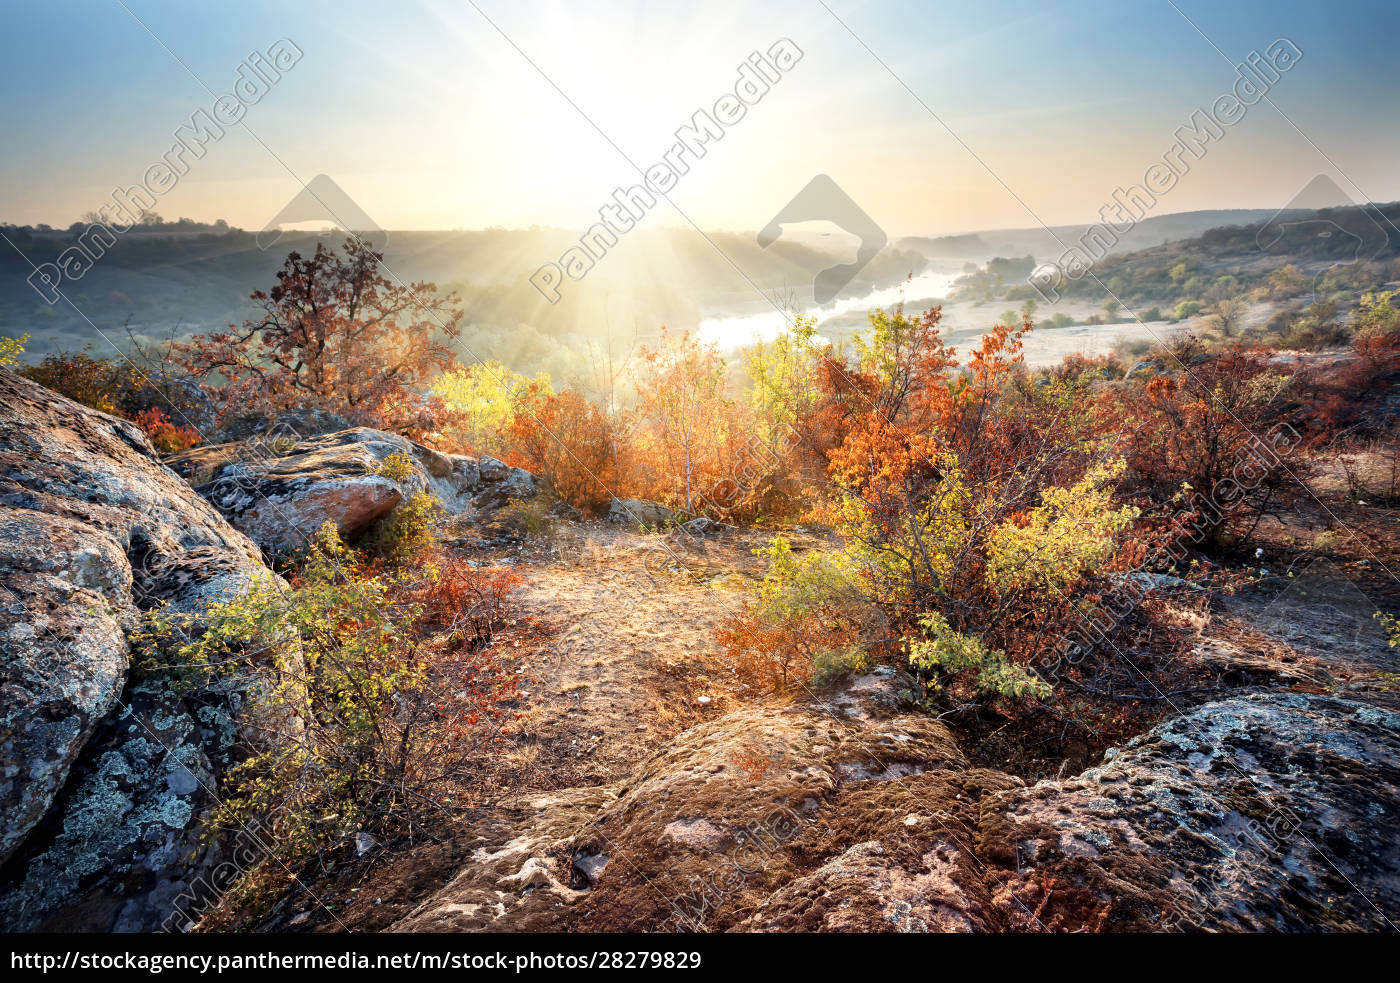 dawn, on, banks, of, mountain, river - 28279829